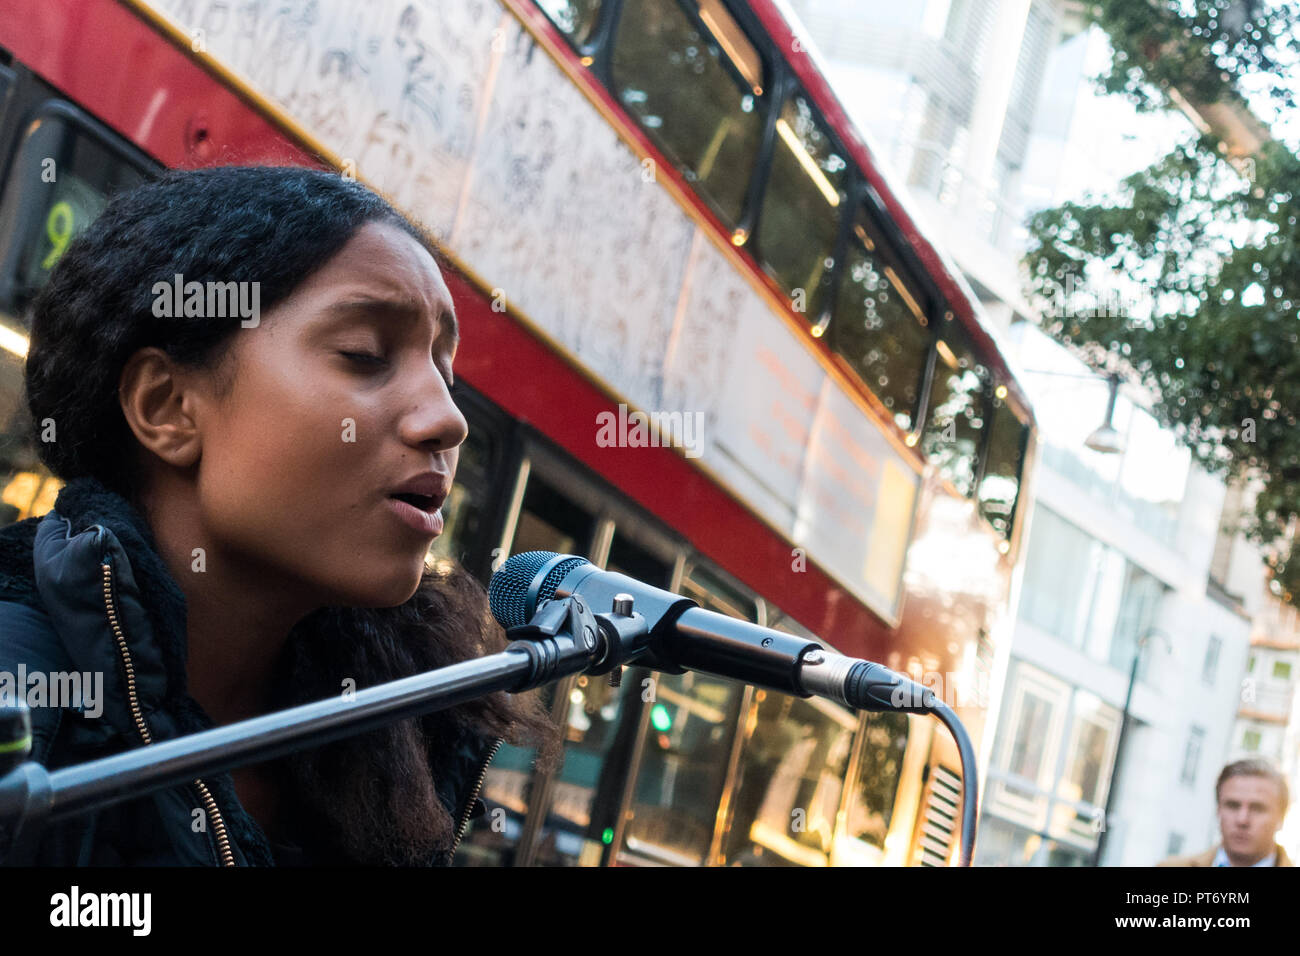 Harmonie London, street entertainer, on keyboards and vocals, Oxford Street, London, UK, Europe. - Stock Image